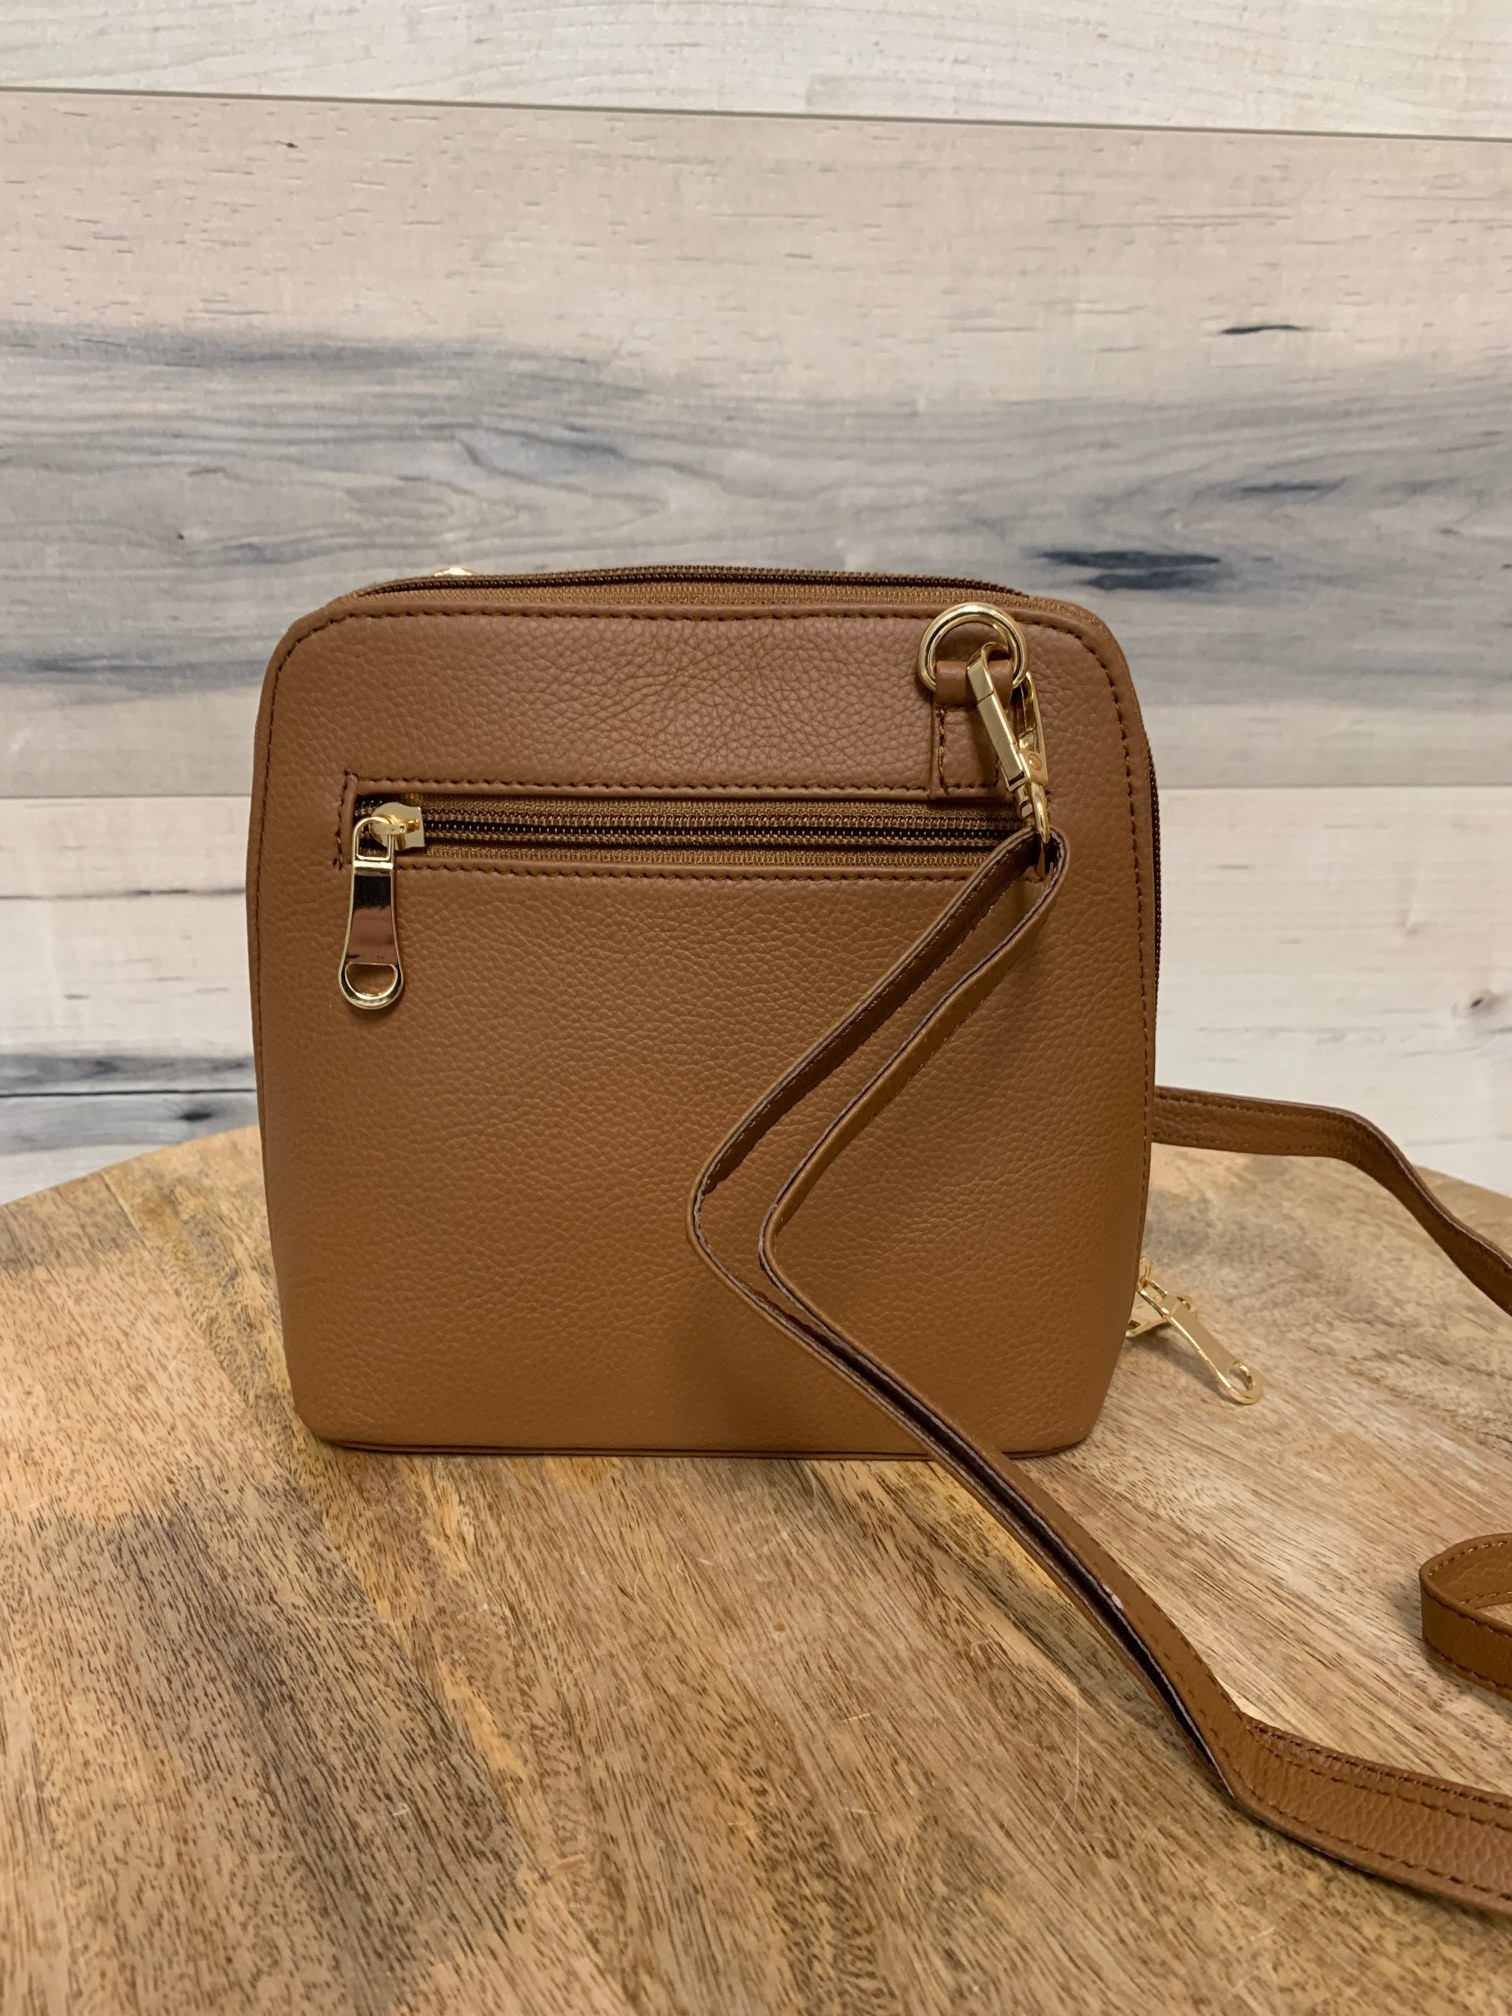 Small Structured Cross-Body Bag - Camel